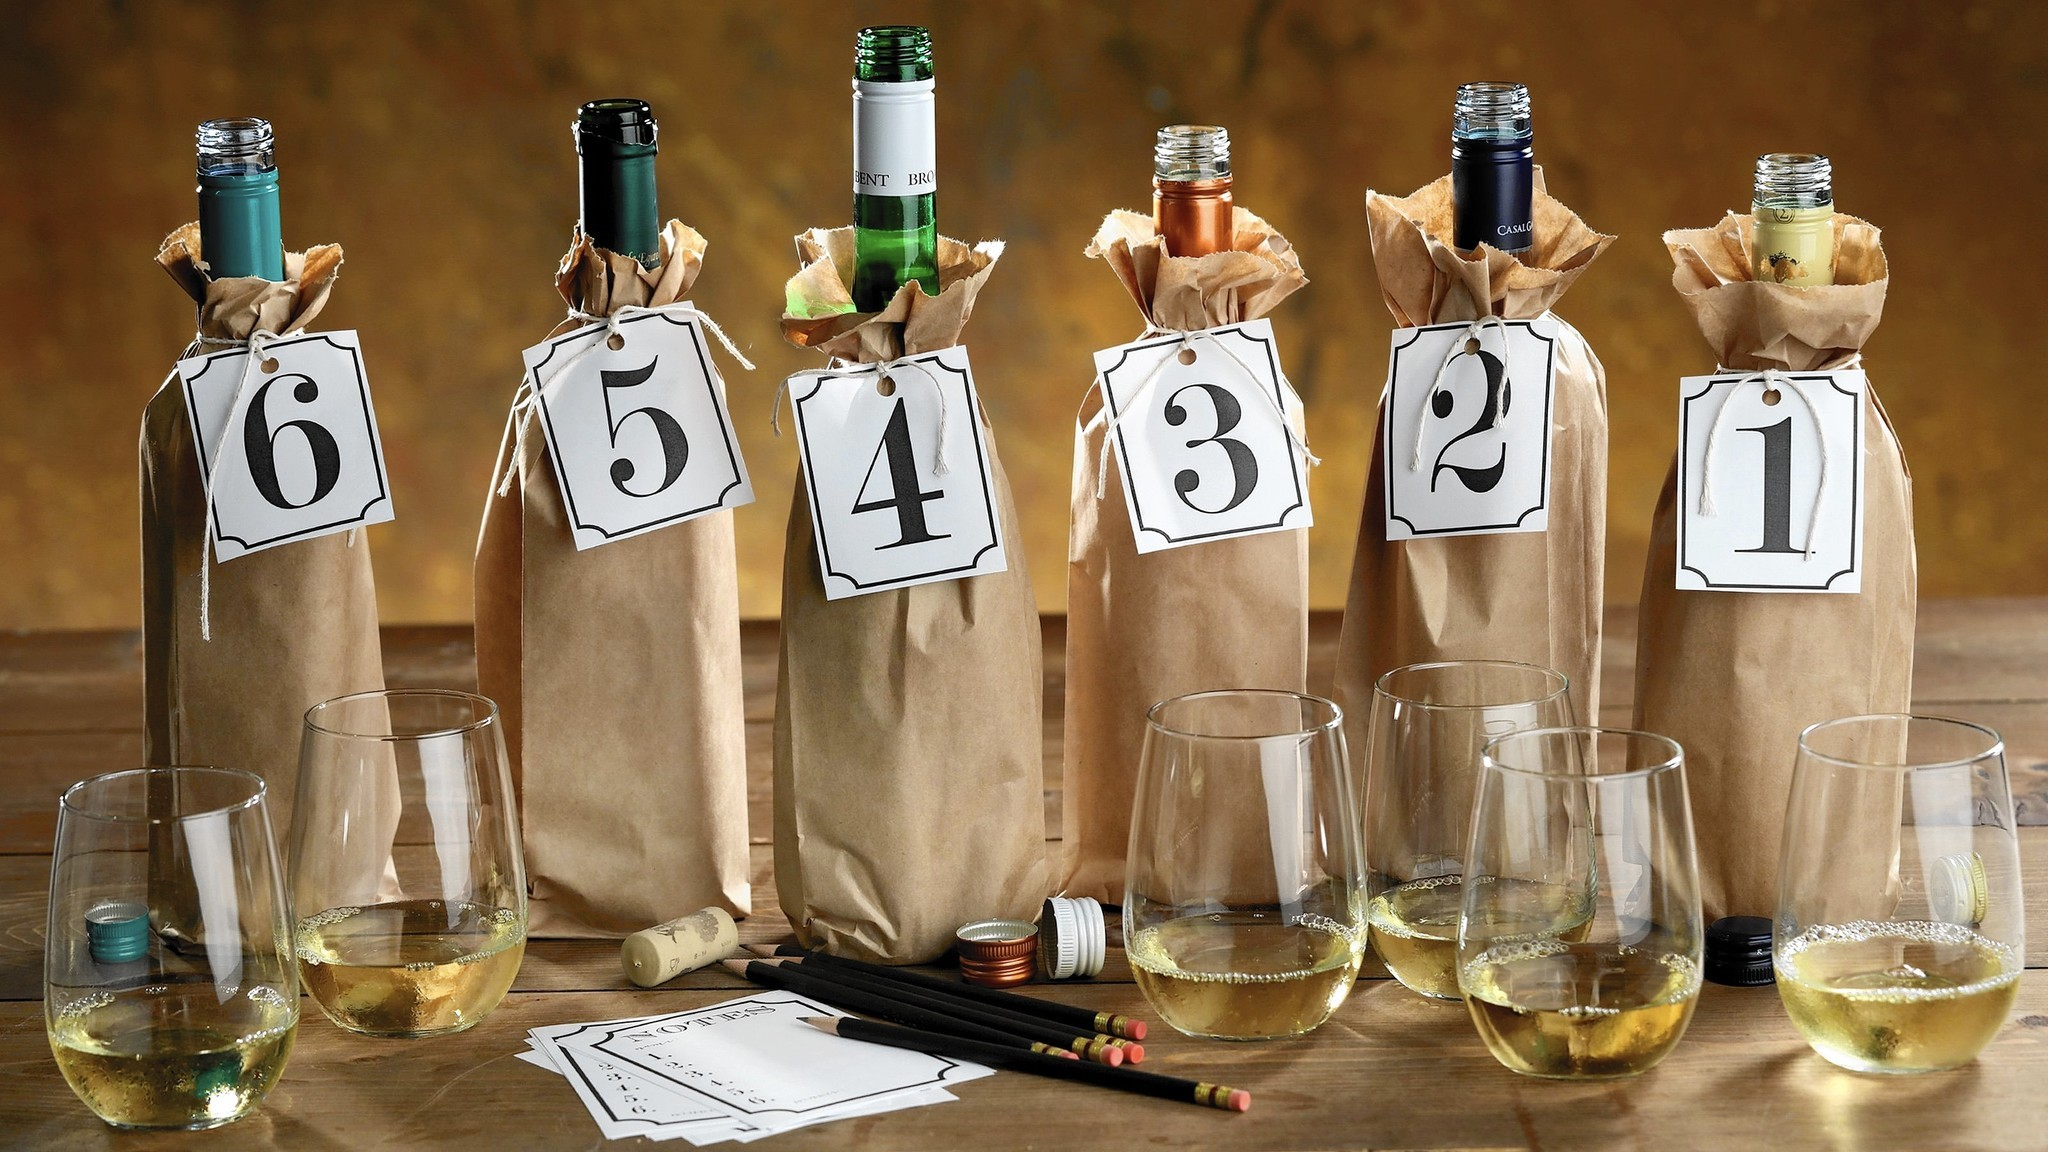 How To Host A Wine Tasting At Home And Not Get Drunk